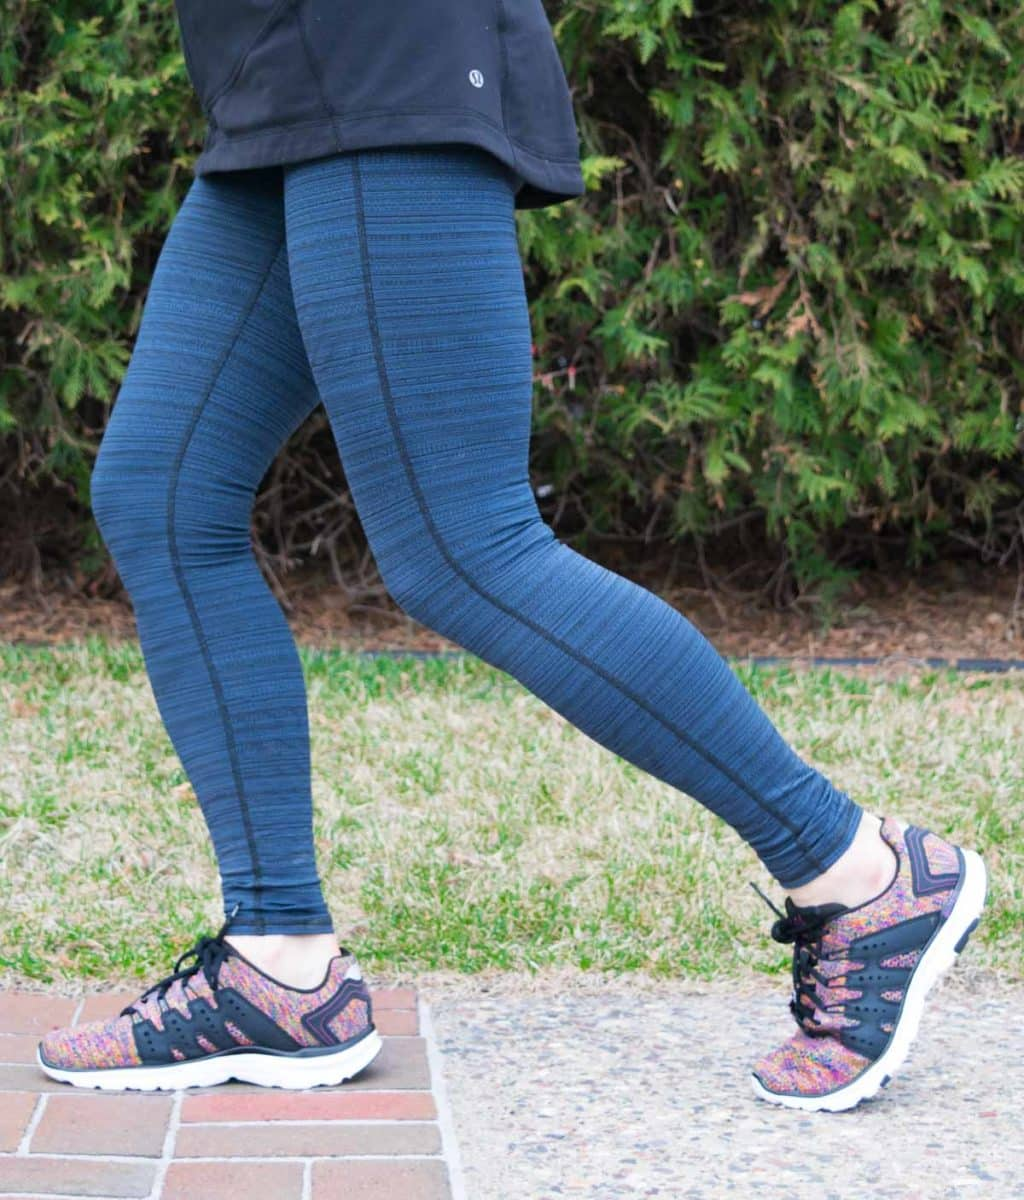 Shoes can play a pivotal role when it comes to knee pain, back pain, hip pain and more; find out how you can make the most of your walking shoes.